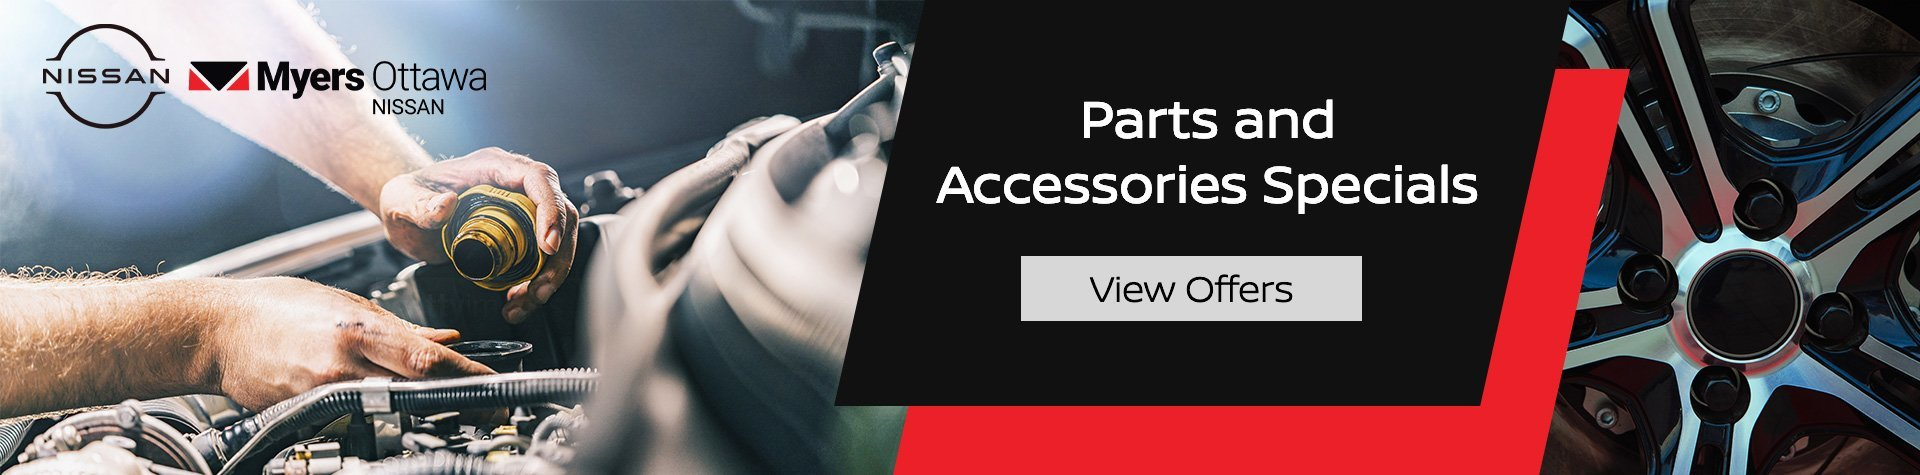 Pars and accessories special